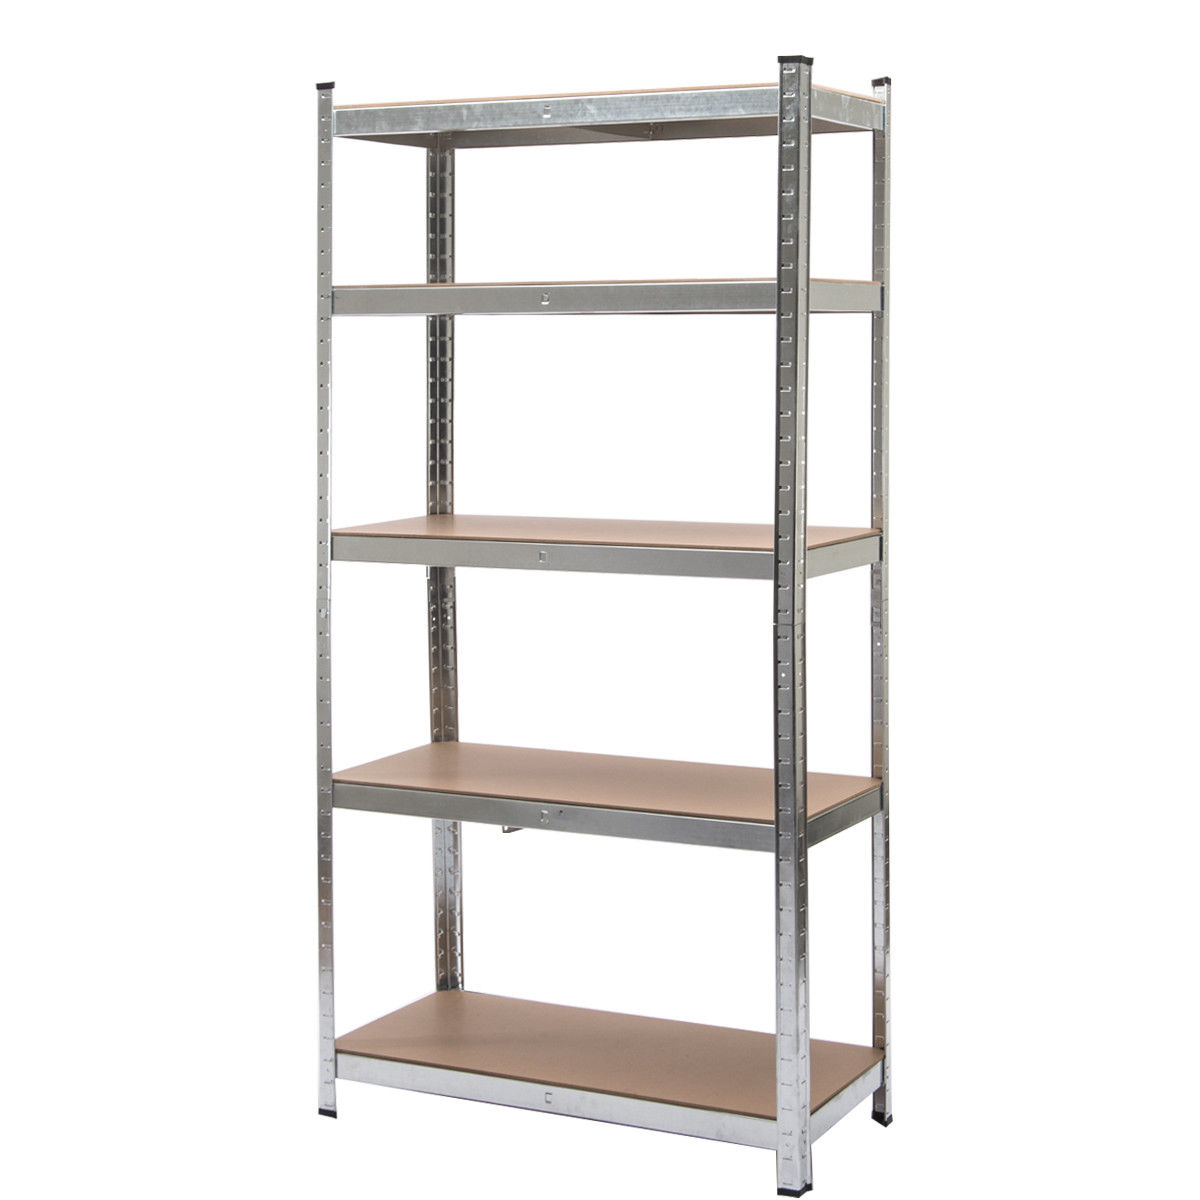 Shop our selection of Garage Shelves & Racks in the Storage & Organization Department at The Home Depot.